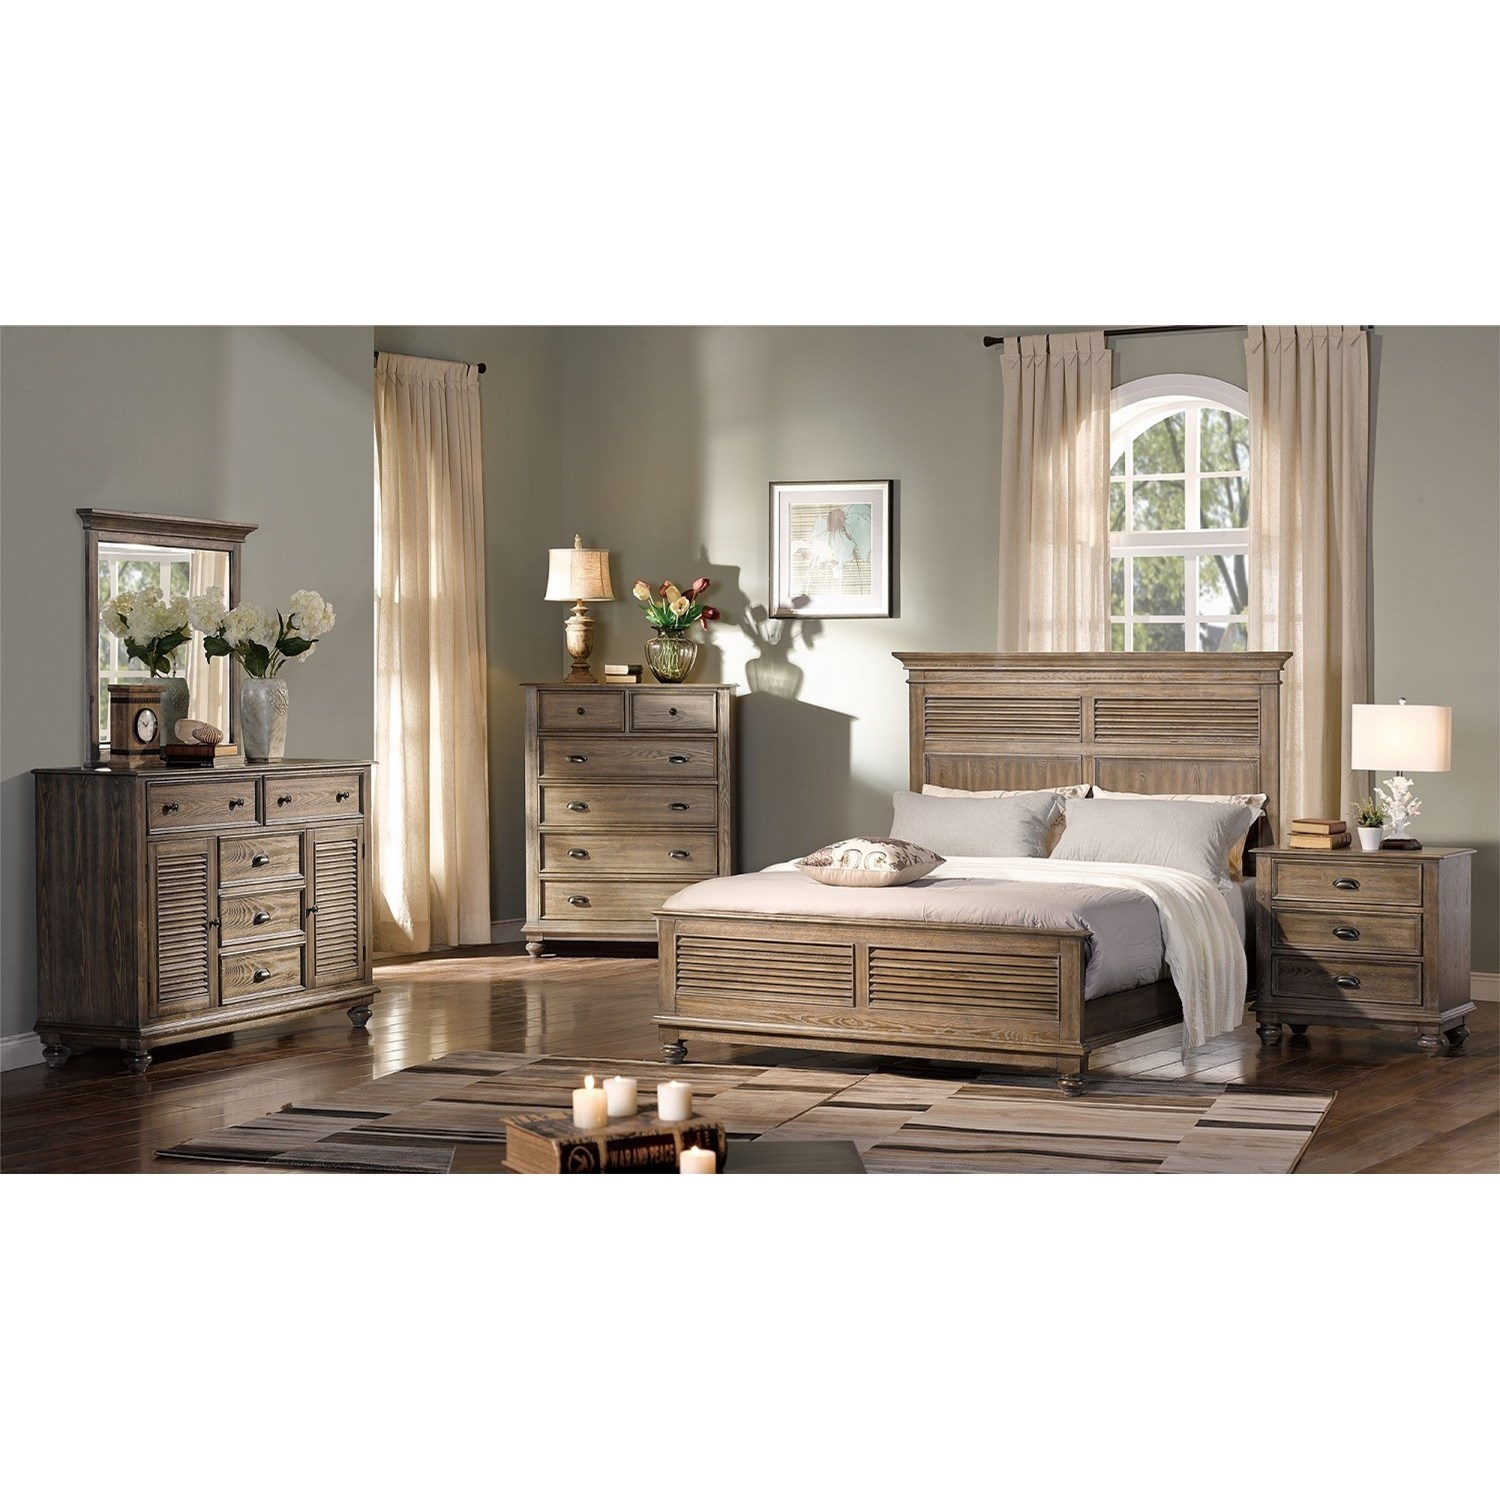 Lakeport Pewter Queen Bedroom Group by New Classic at Rife's Home Furniture